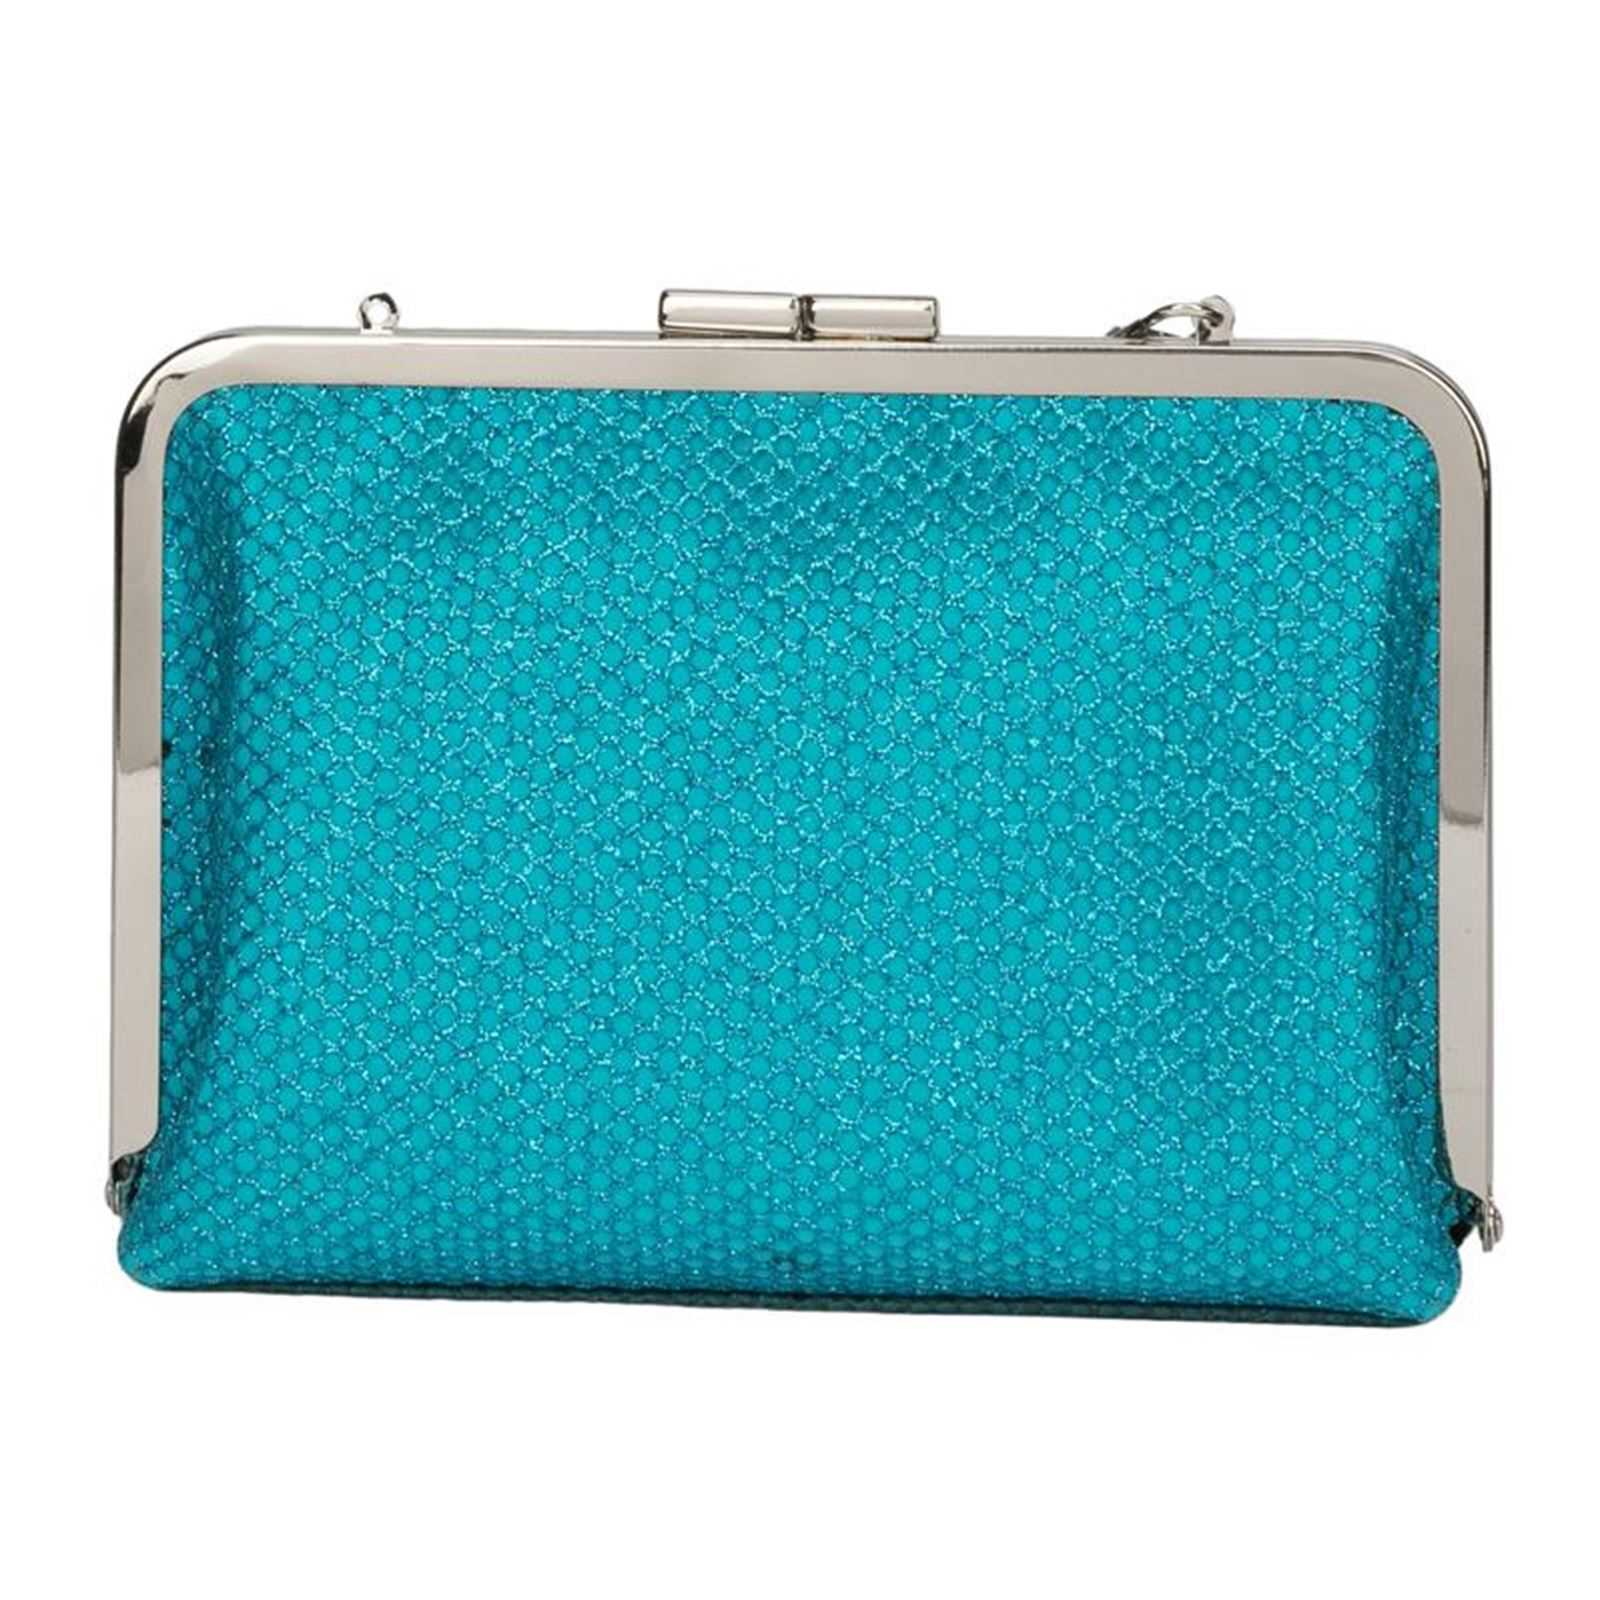 3c1ddb6c8fb99b Lollipops Pochette exotique pailletée - bleu   BrandAlley